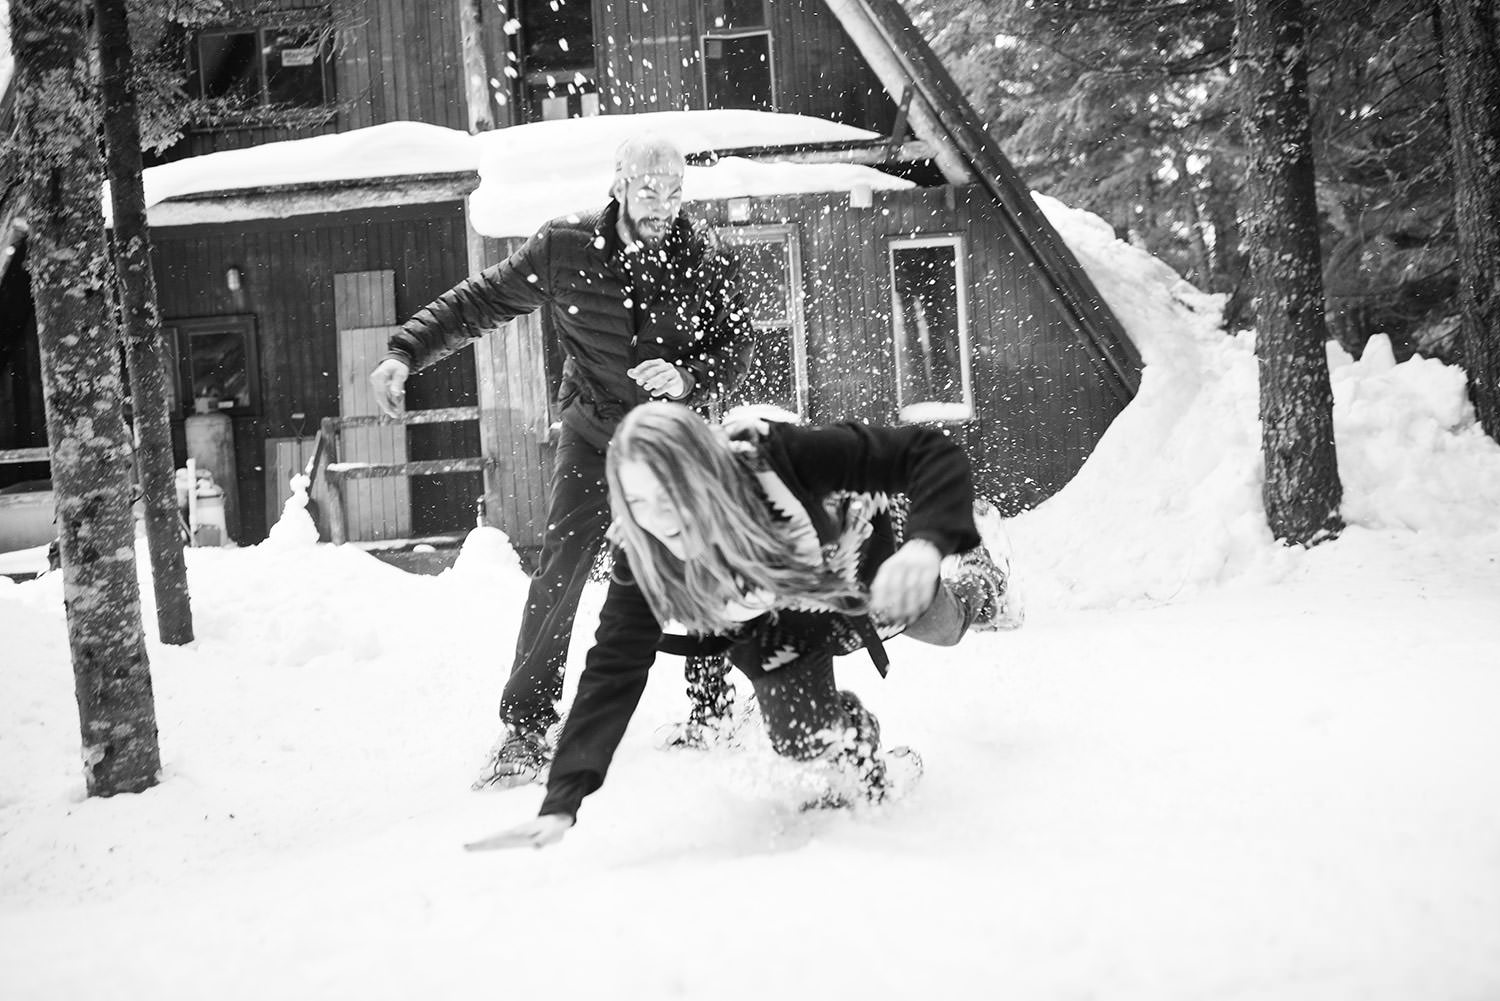 Falling in the snow at an Snowshoe engagement session at Snoqualmie Pass outside Seattle